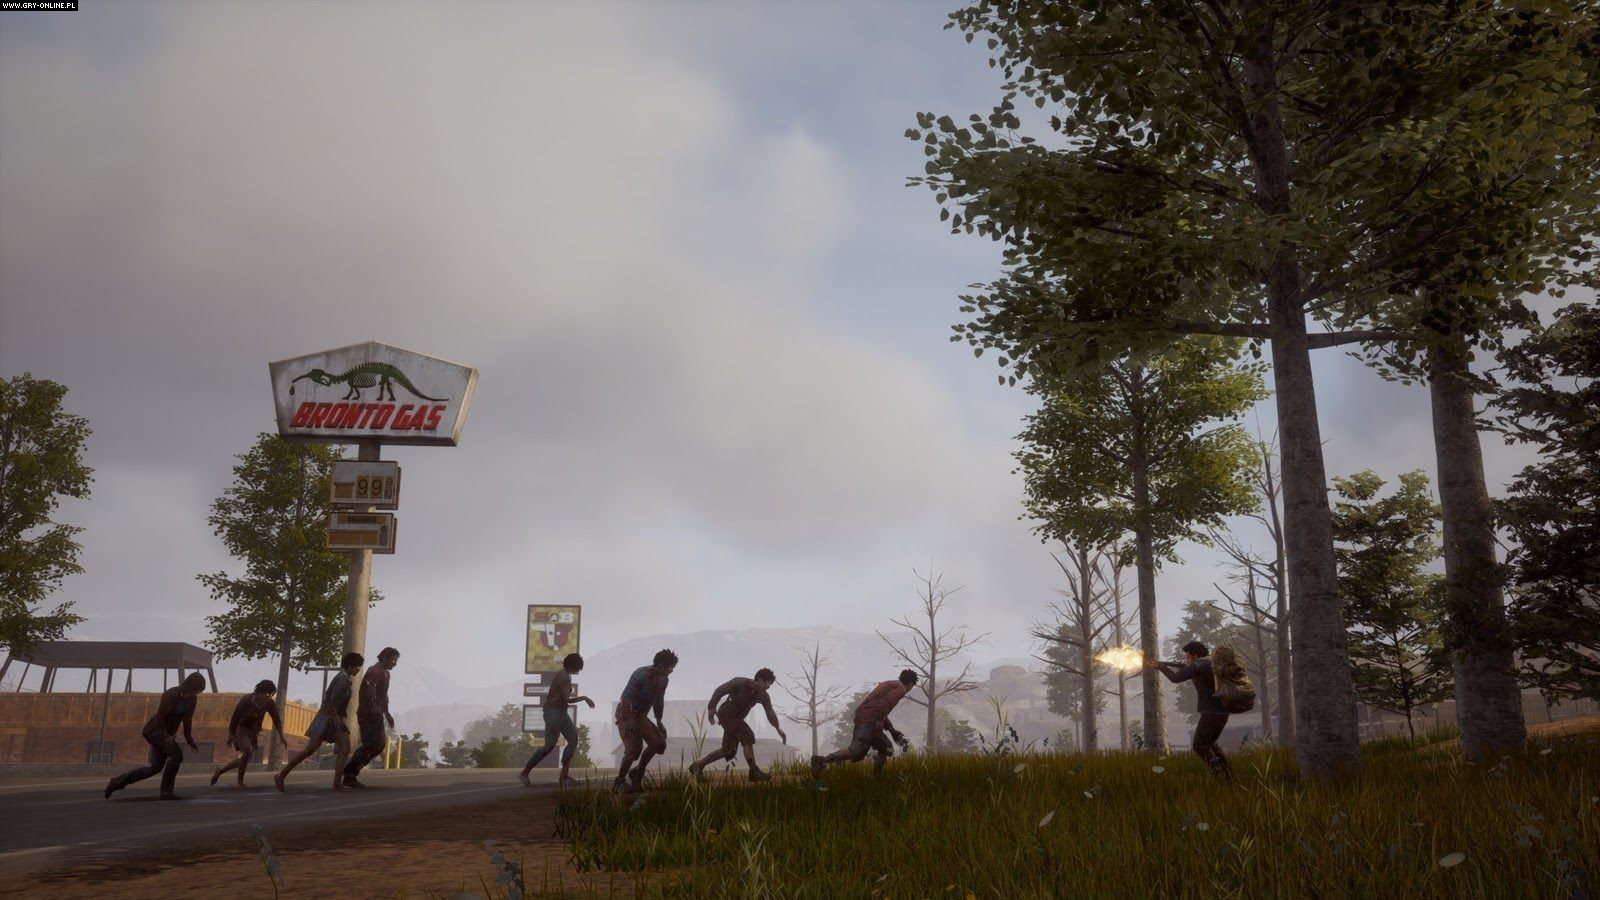 State of Decay 2 PC, XONE Games Image 2/29, Undead Labs, Microsoft Studios